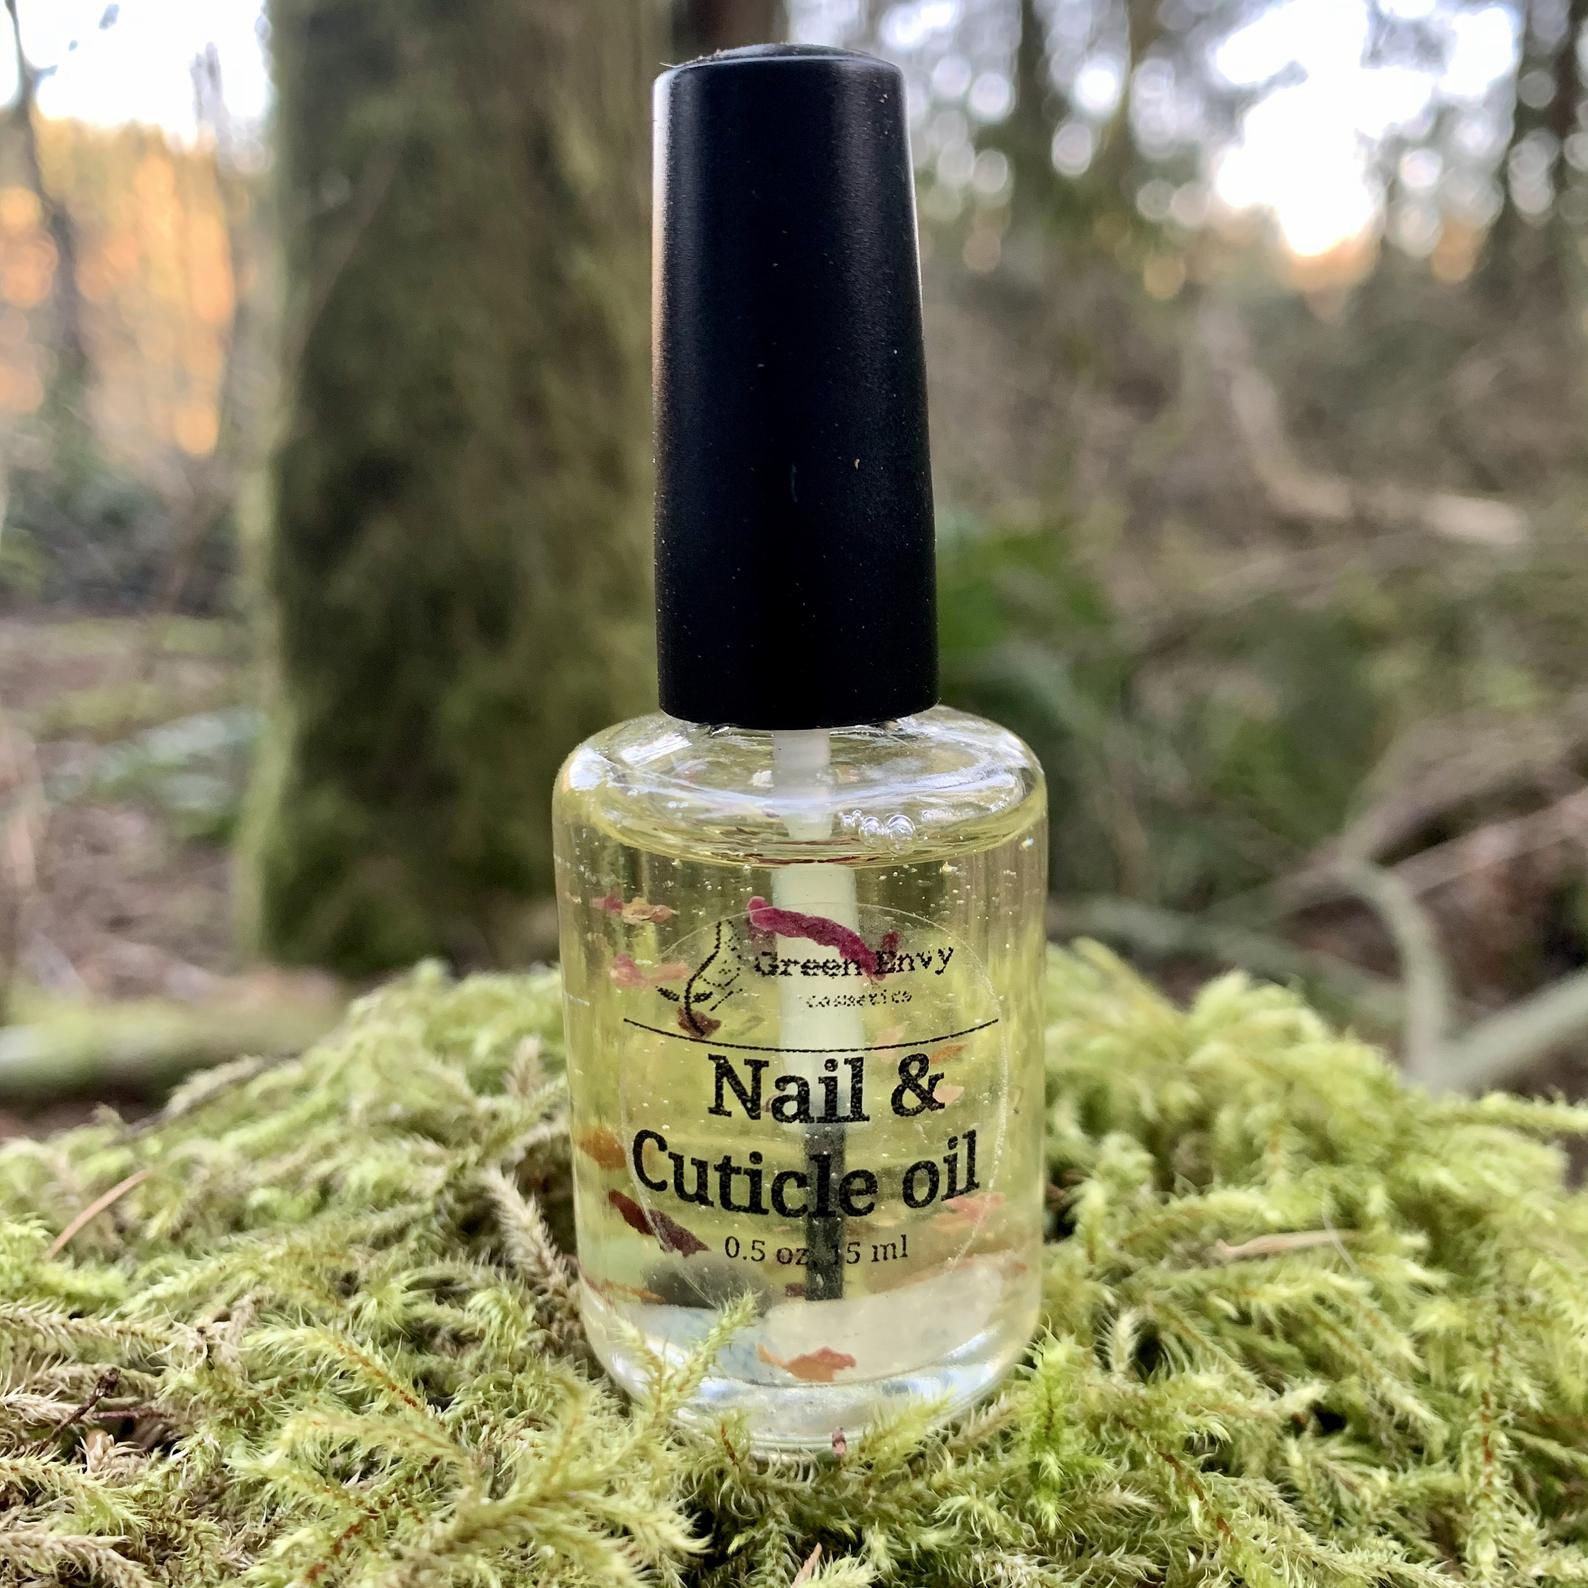 Green Envy Cosmetics - Cuticle and Nail Oil